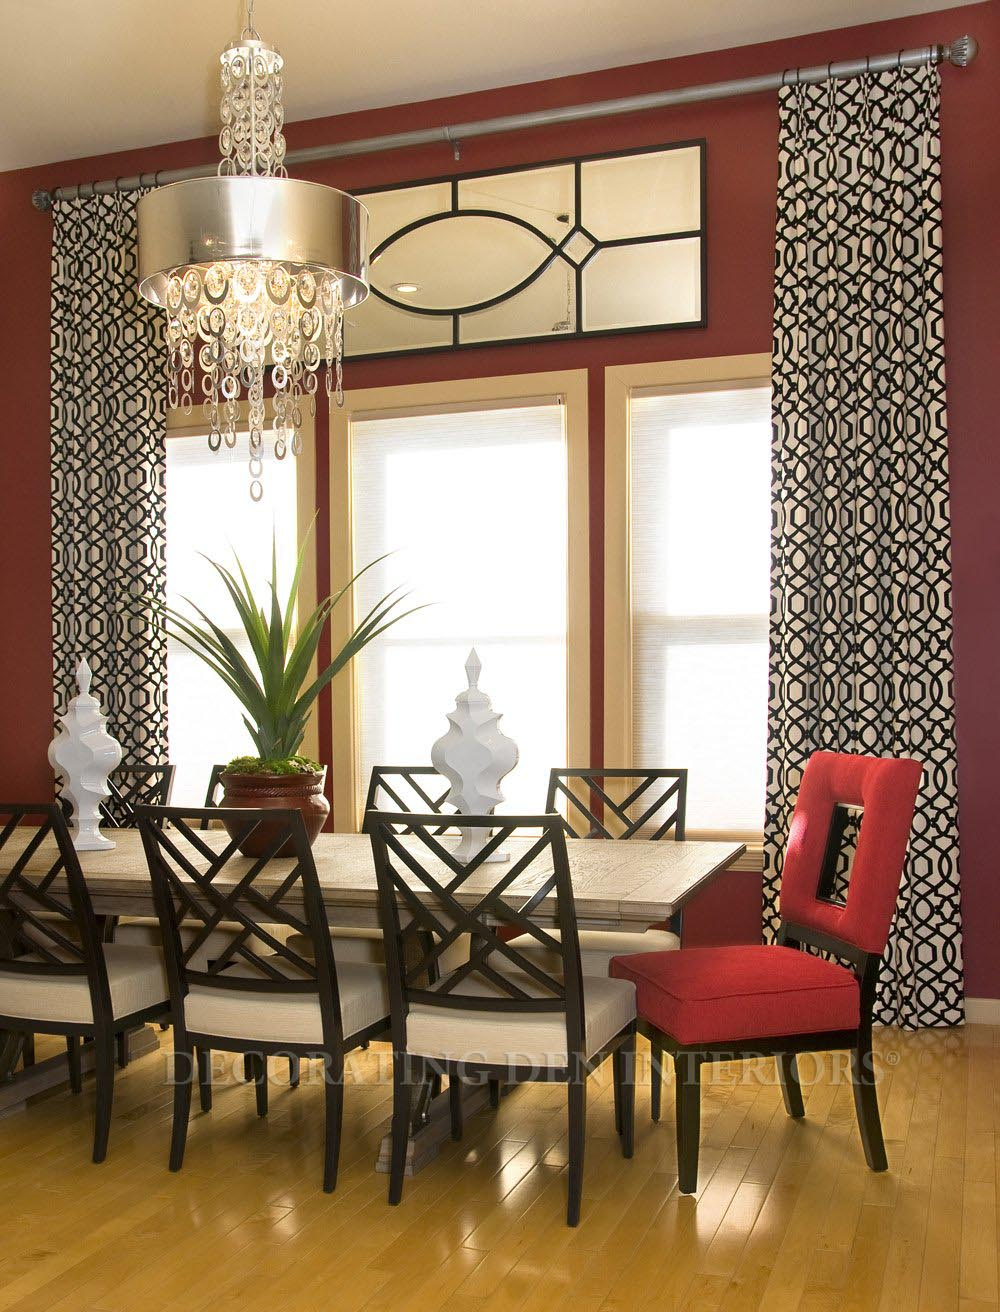 Contemporary drapes window treatments window treatments Contemporary drapes window treatments